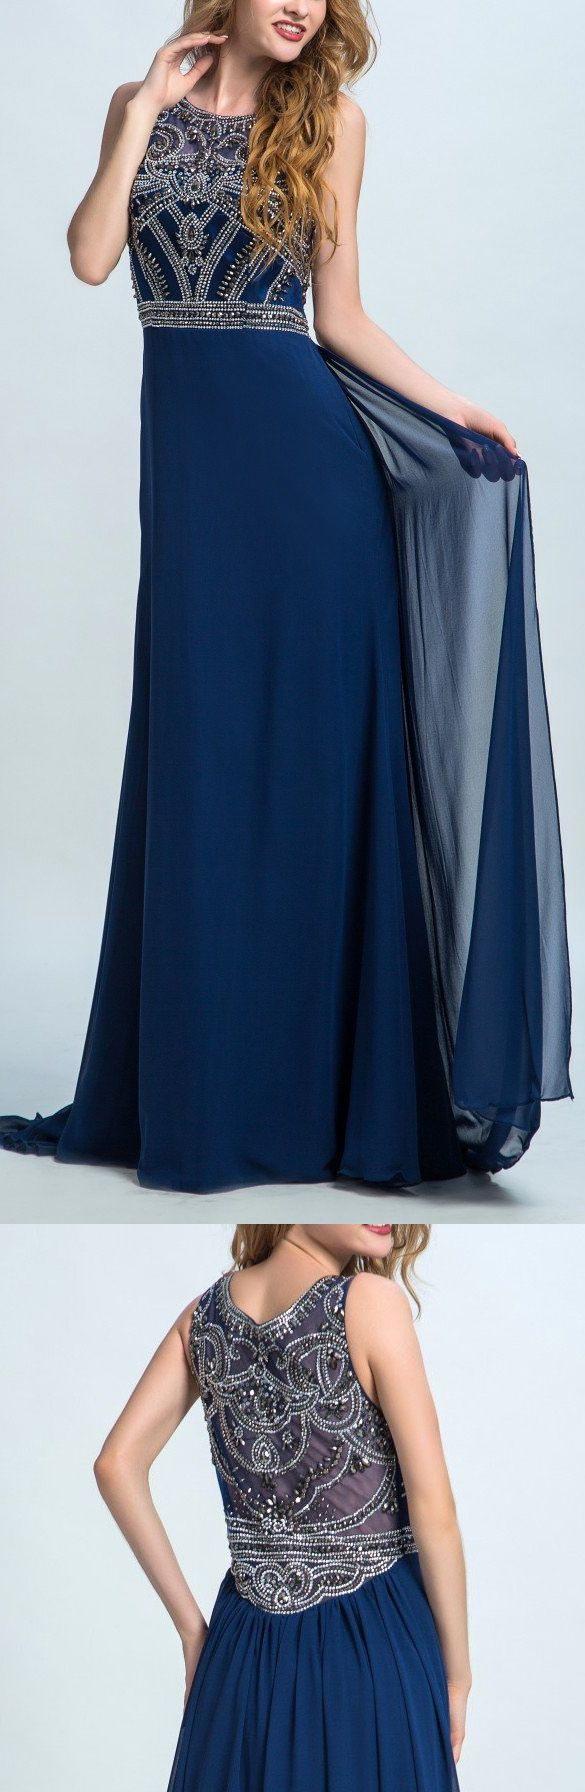 A line prom dresses navy evening dresses long evening dresses with